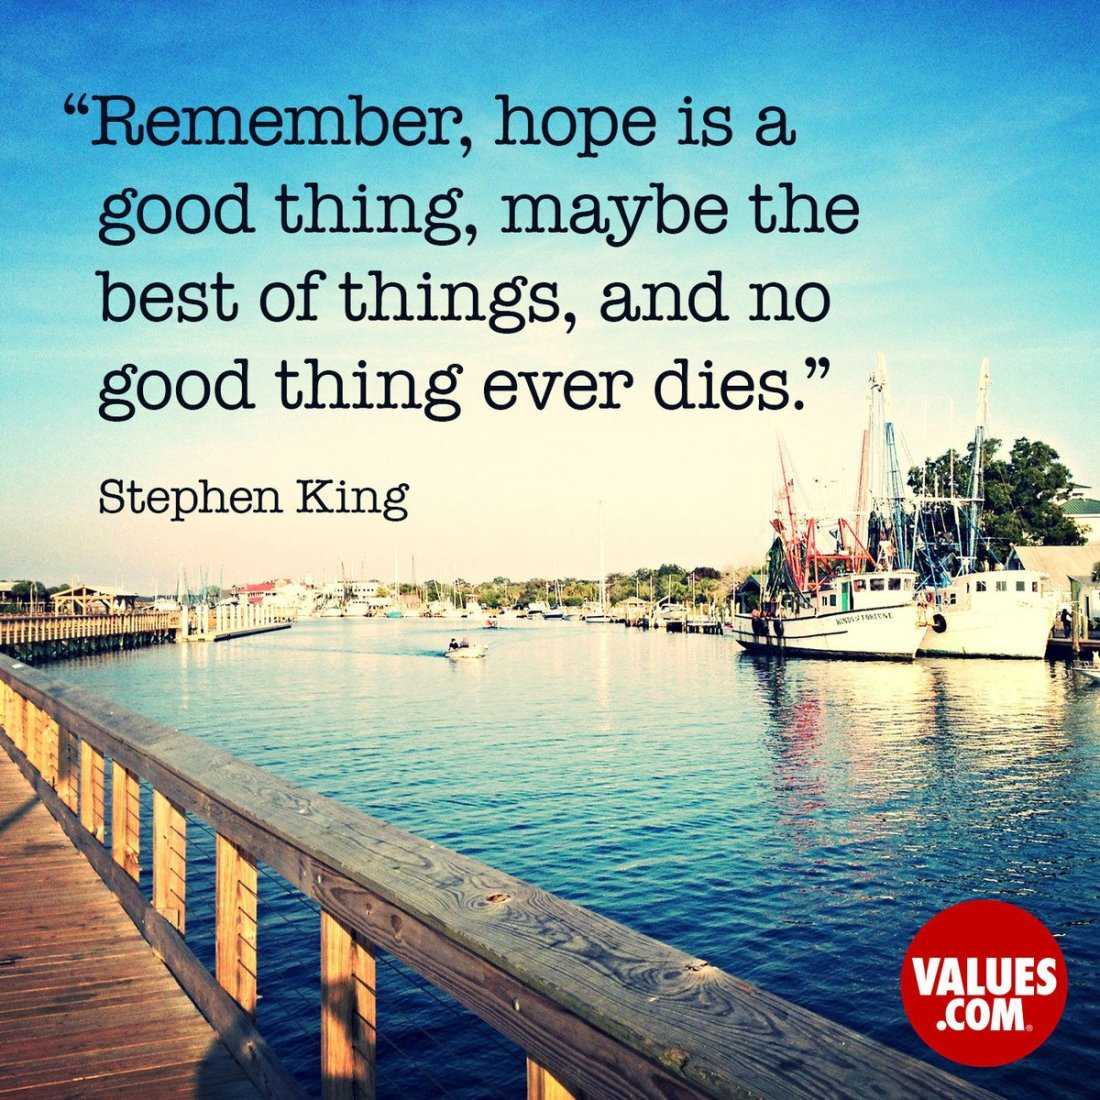 """""""Remember, hope is a good thing, maybe the best of things, and no good thing ever dies."""" - @StephenKing  #Hope #Optimism"""